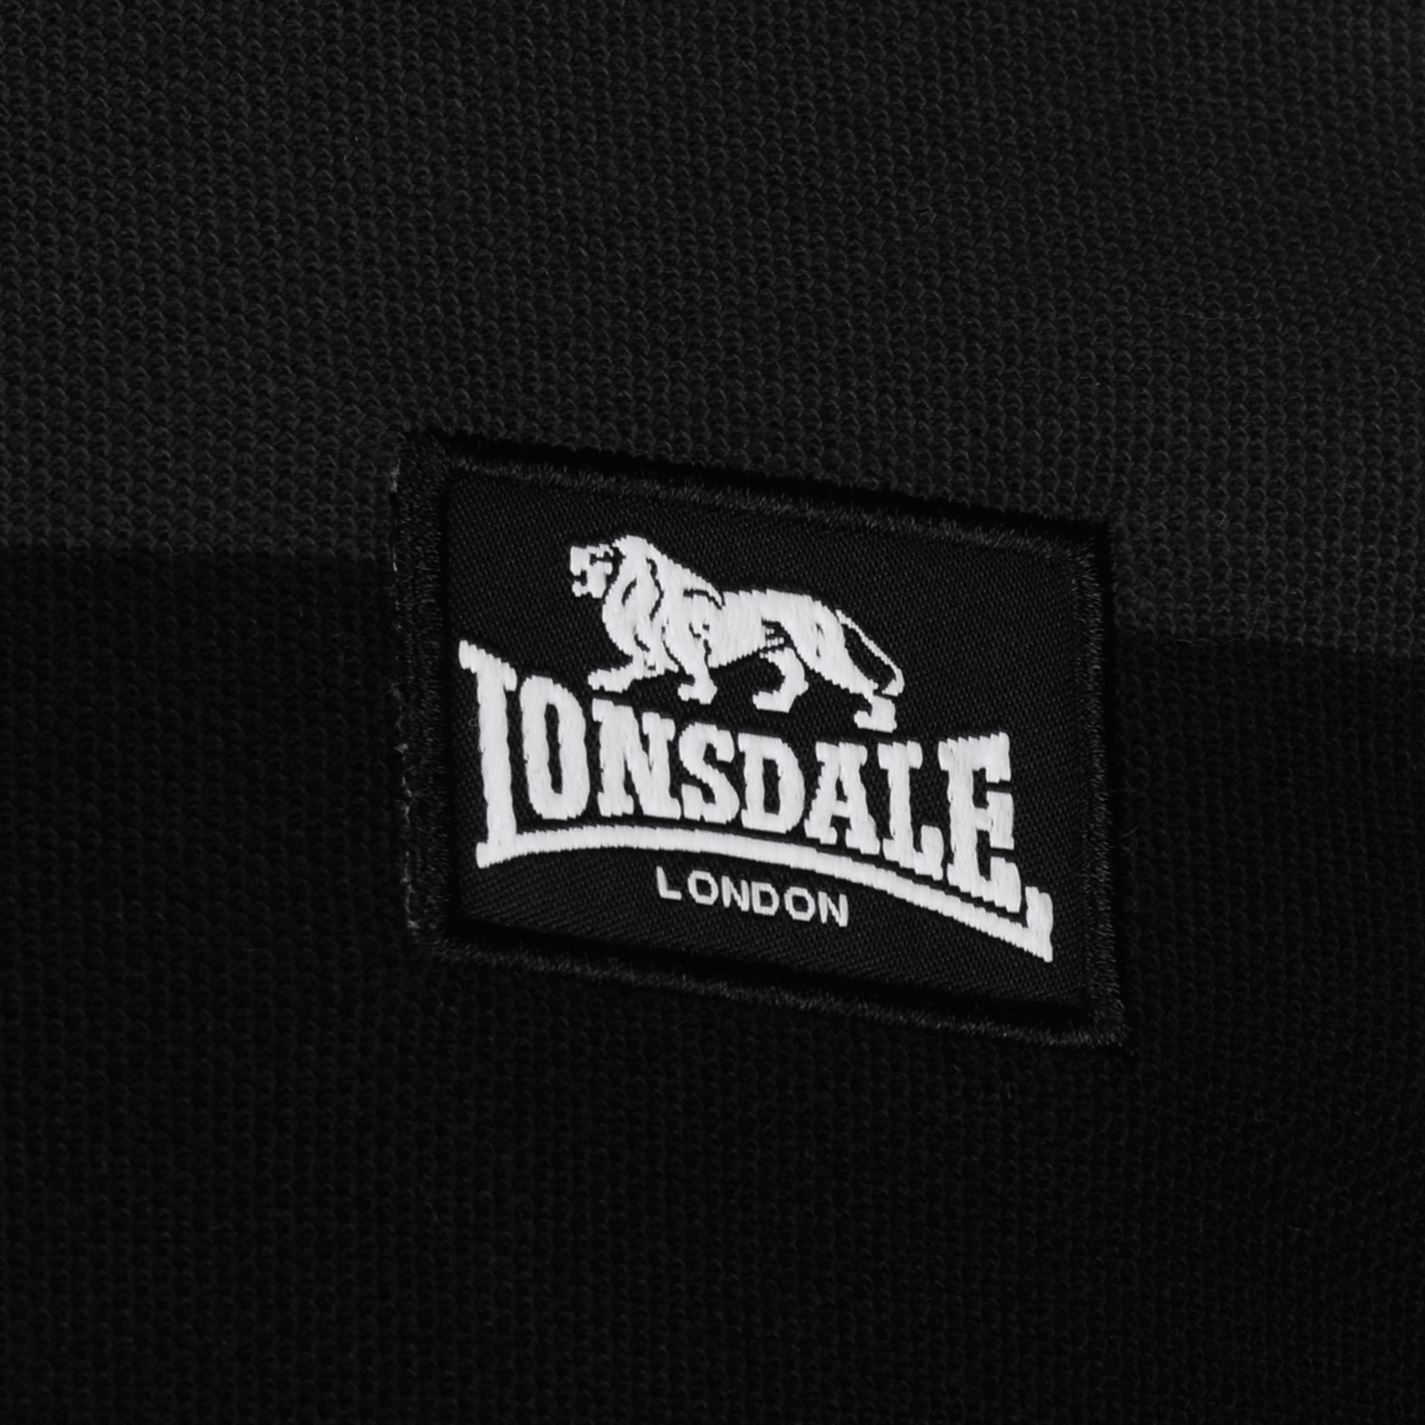 Lonsdale-Mens-Stripe-Polo-Shirt-Classic-Fit-Tee-Top-Short-Sleeve-Button-Placket thumbnail 15